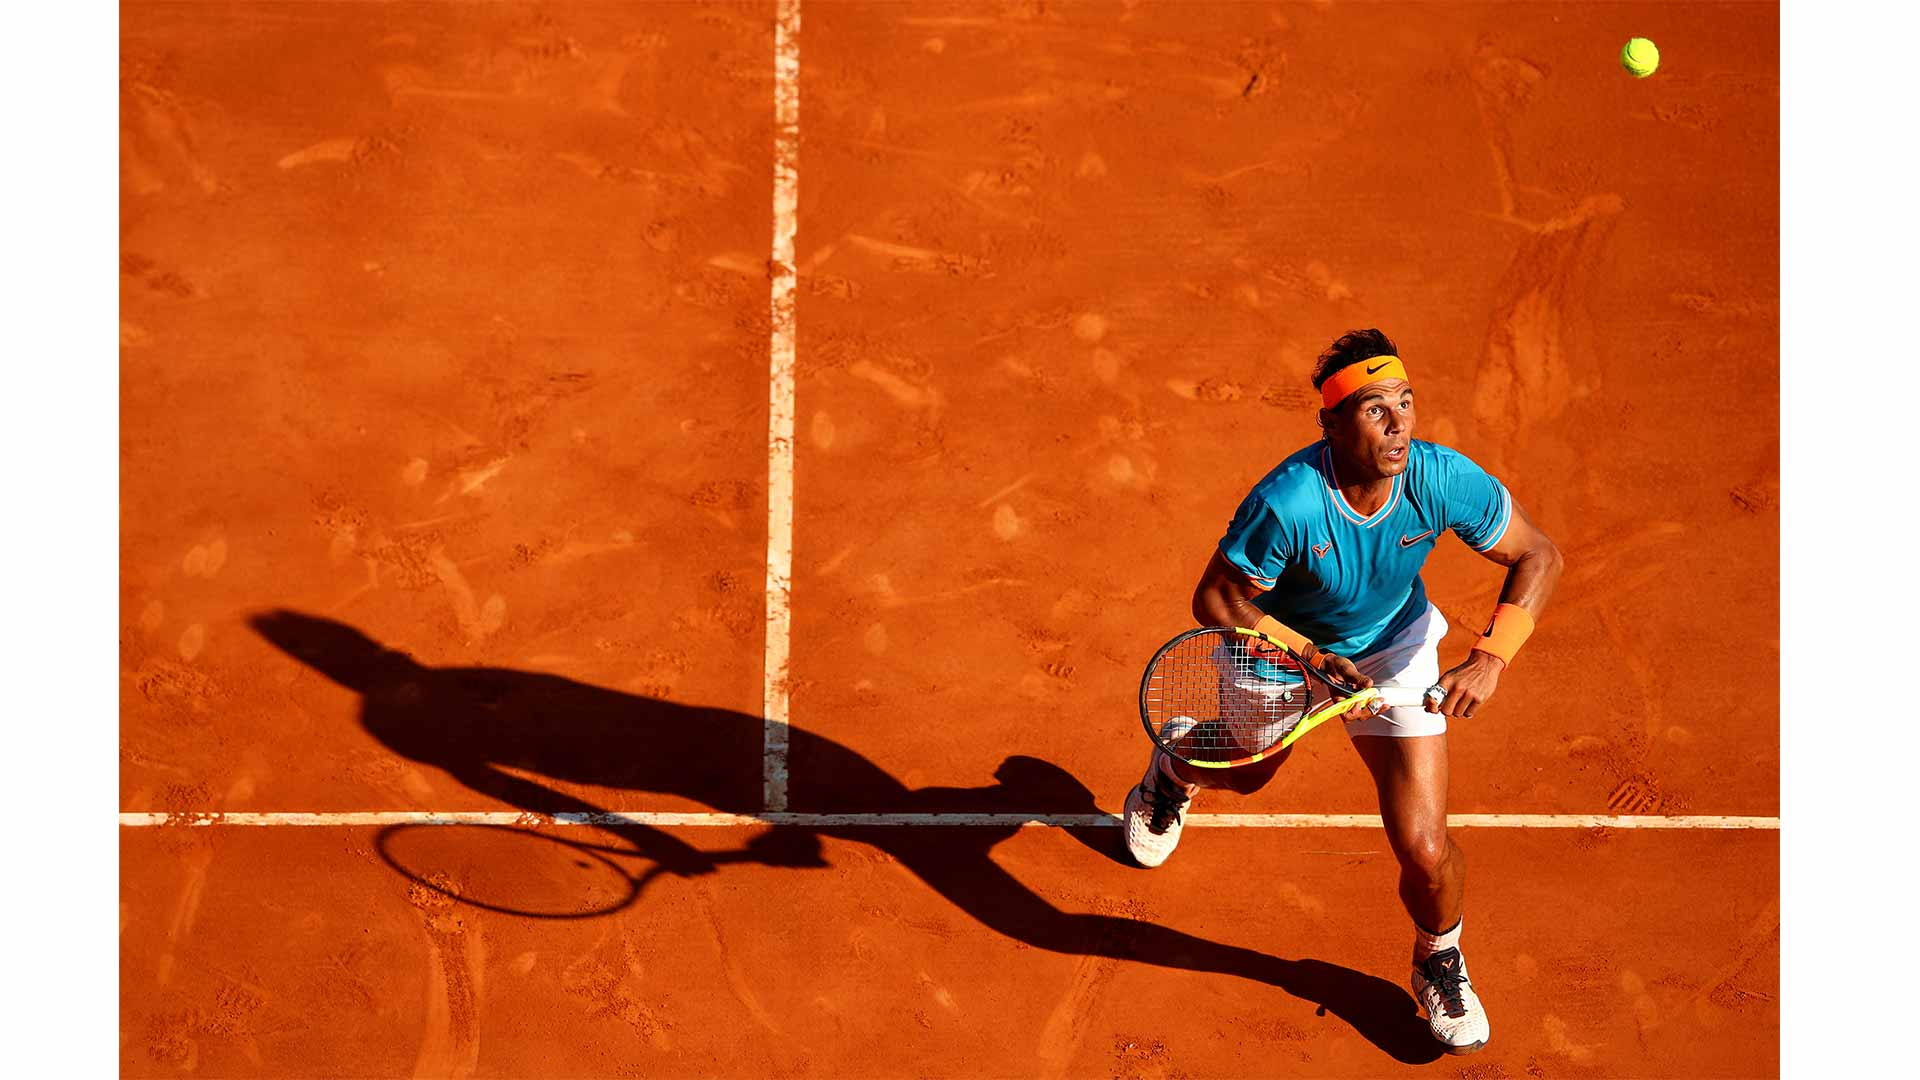 Photographer Clive Brunkill's Best of 2019 pick: Rafael Nadal in action at the 2019 Rolex Monte-Carlo Masters.